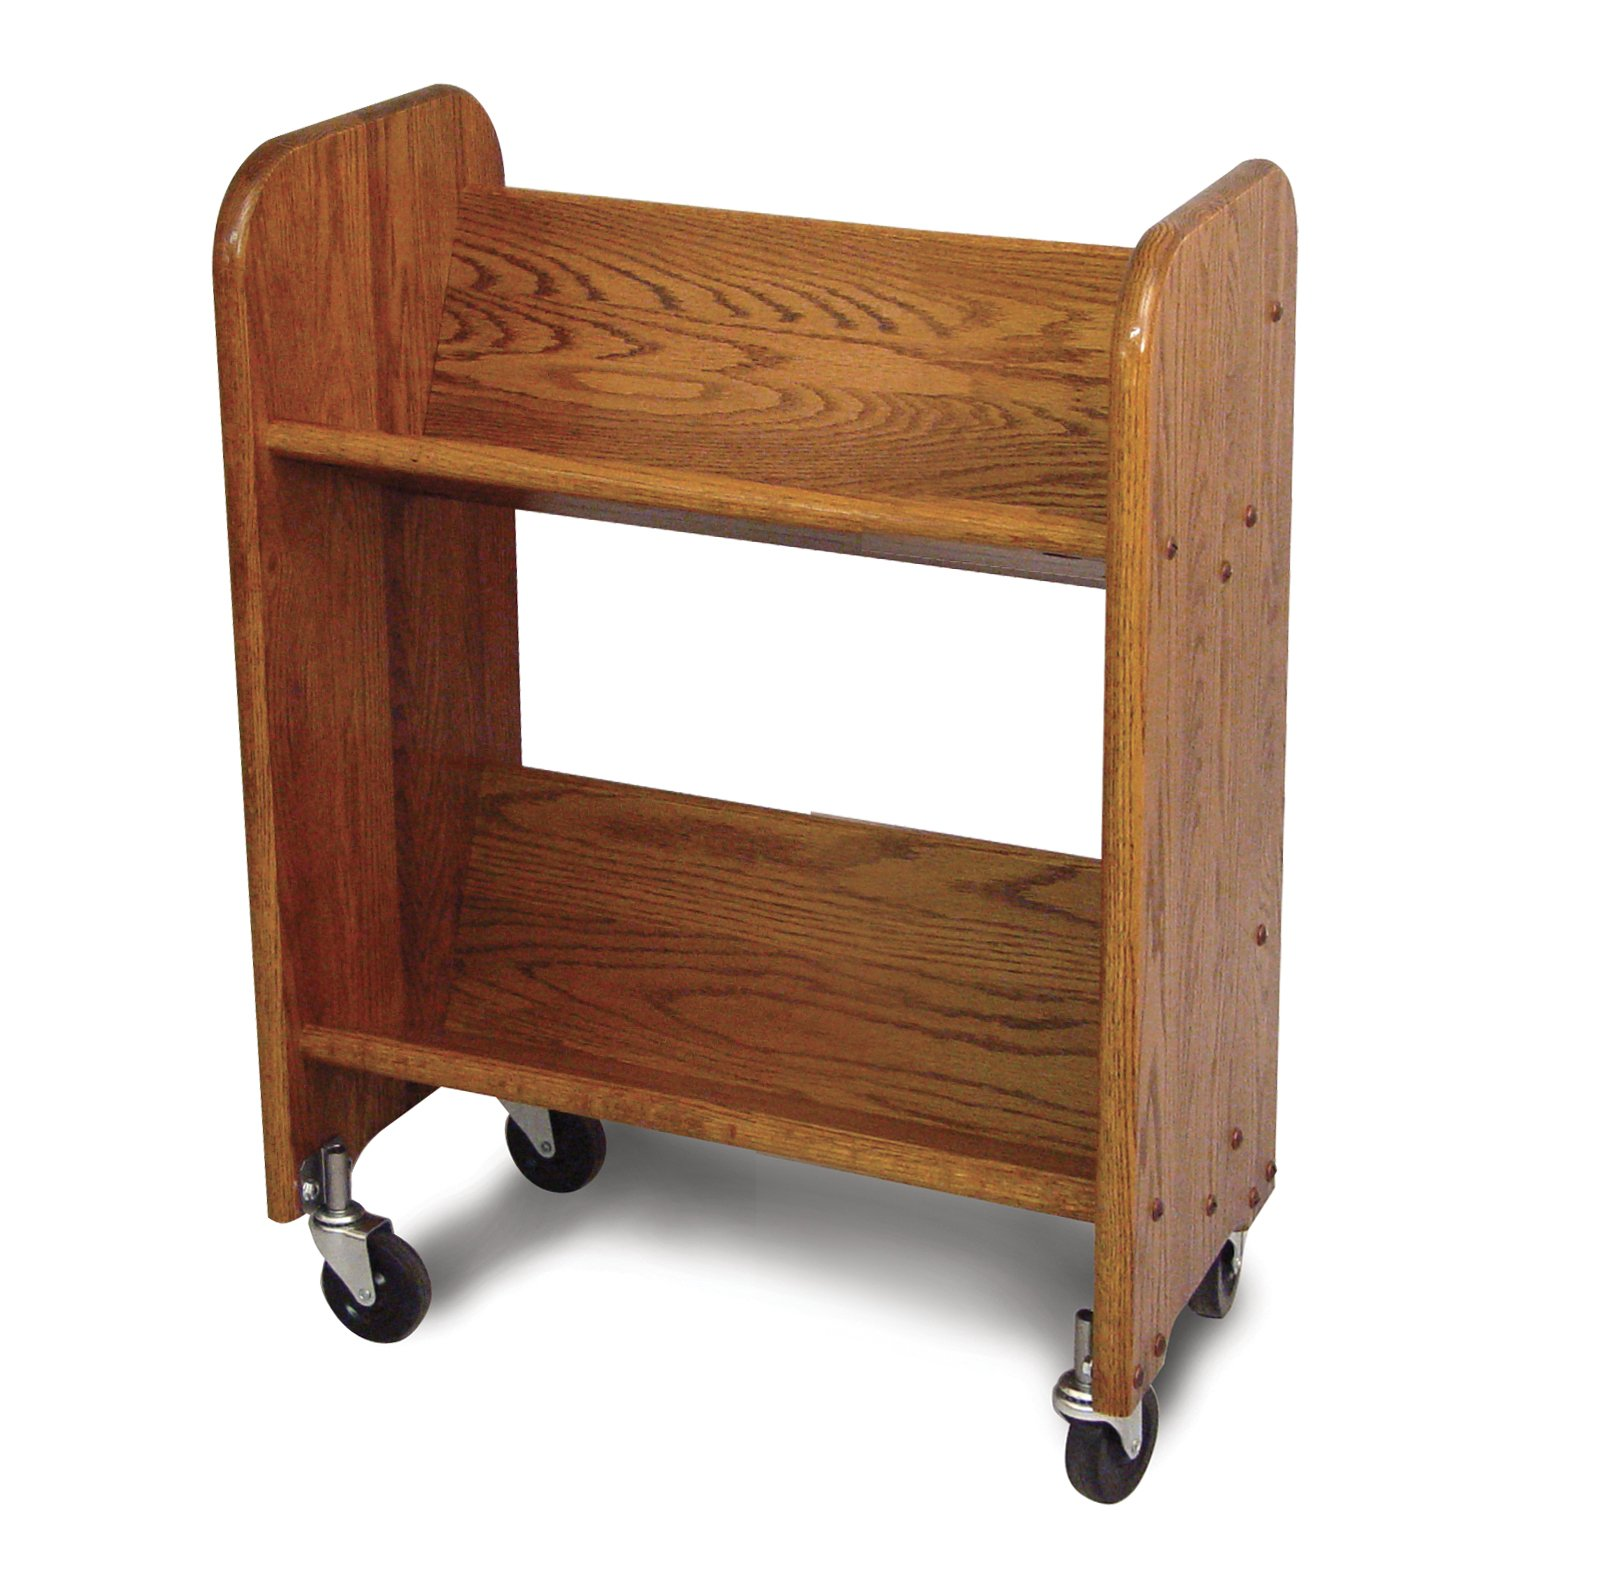 Catskill Craftsmen Bookmaster Rack with Tilted Shelves, Walnut Stained Oak Grain by Catskill Craftsman